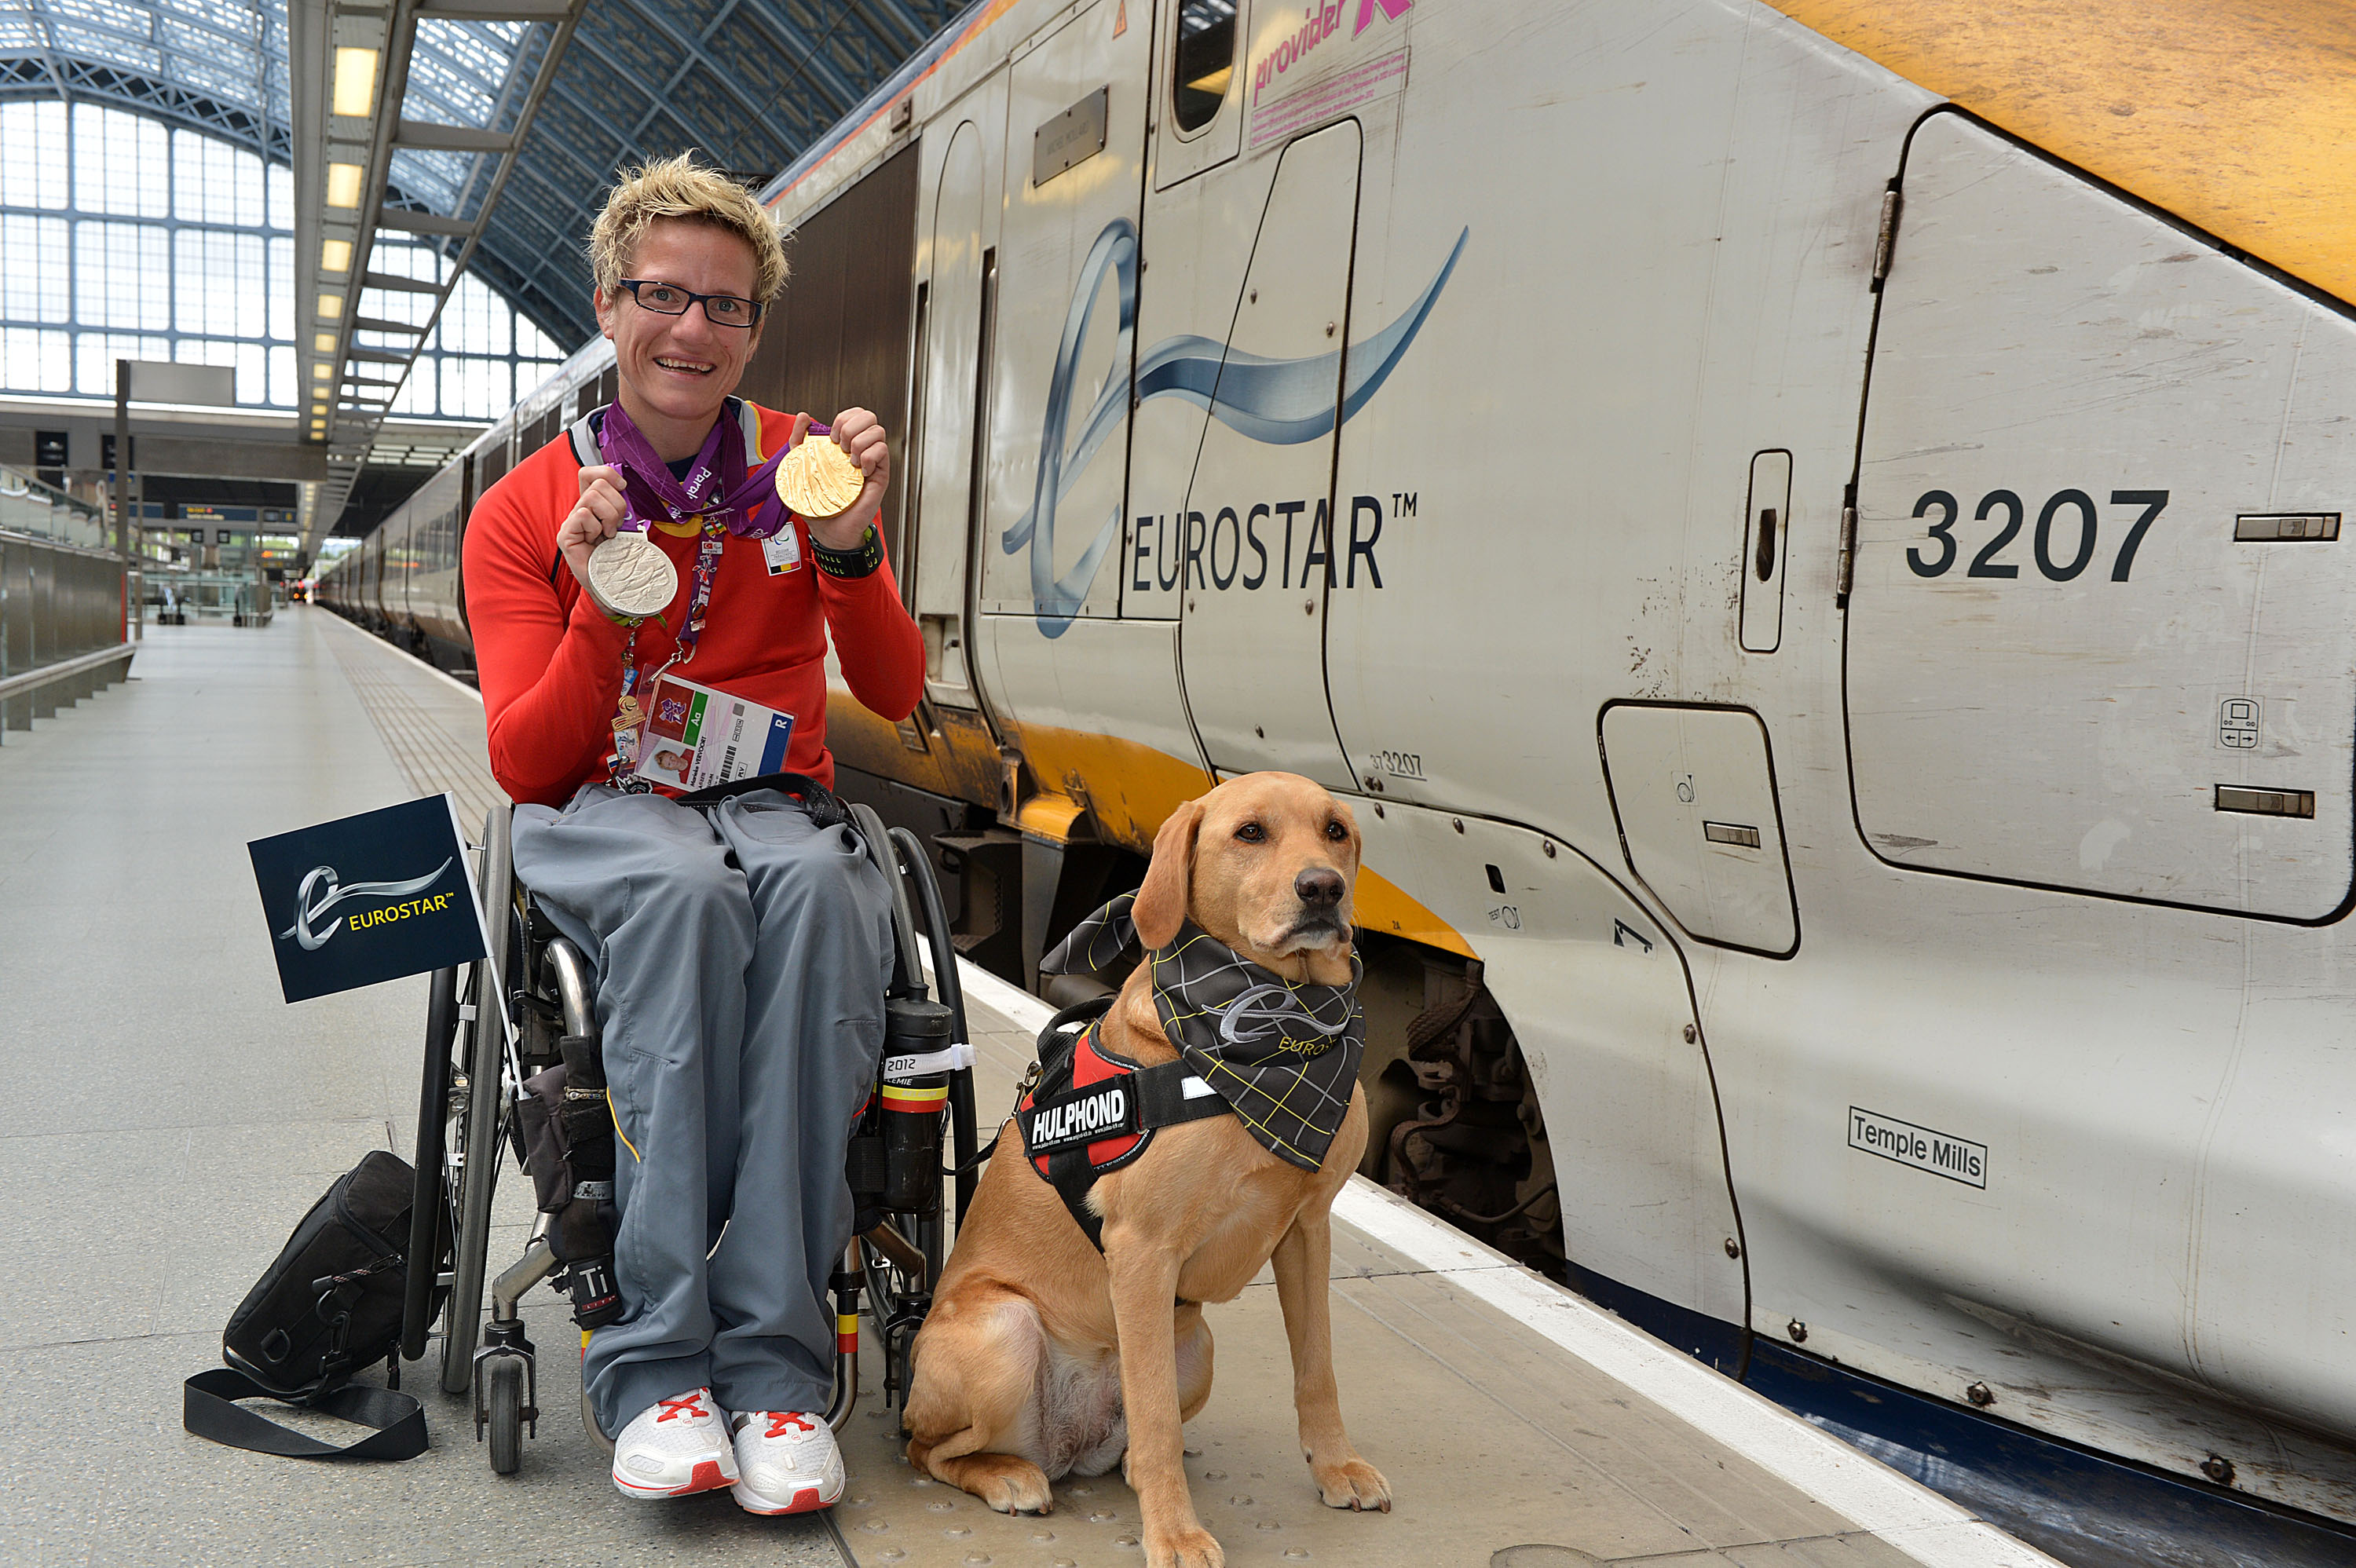 Belgian Paralympic 100m Gold and 200m Silver  medalist Marieke Vervoort and 'Help Hound' Zenn leave  the Eurostar terminal at  St. Pancras, London, UK, on Monday, Sept. 10, 2012. (Photo by Mark Allan/AP Images for Eurostar)